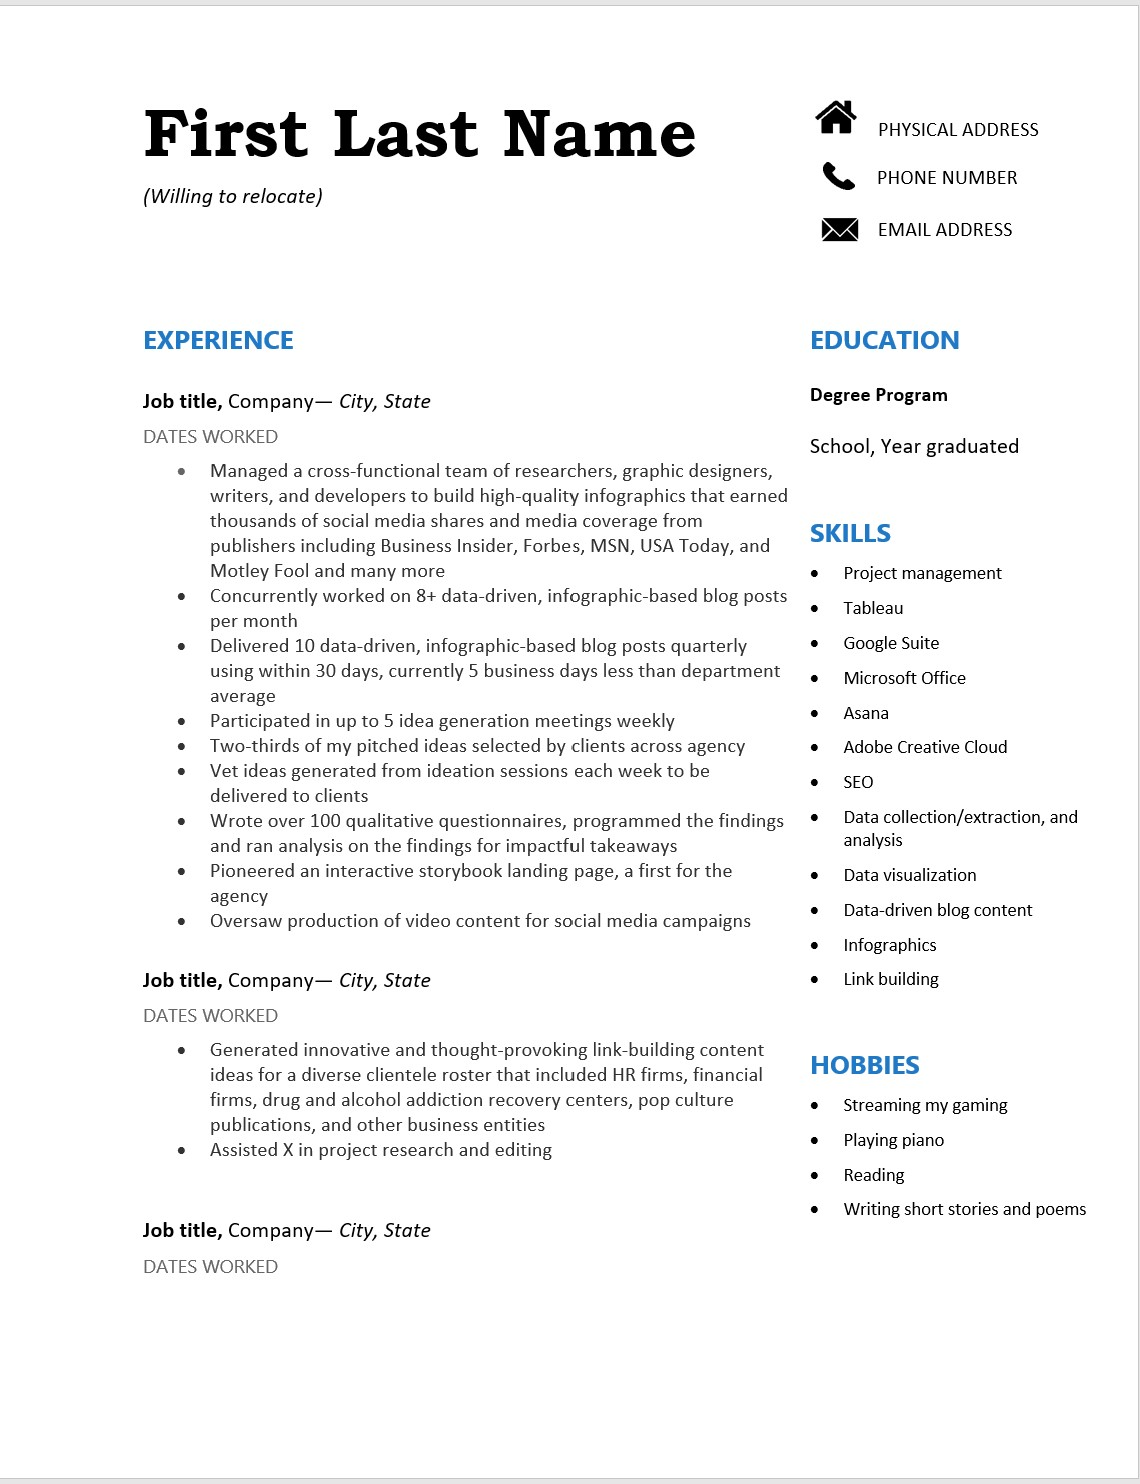 need help improving my resume desperately to find work should years of unrelated jobs Resume Relevant Experience Resume